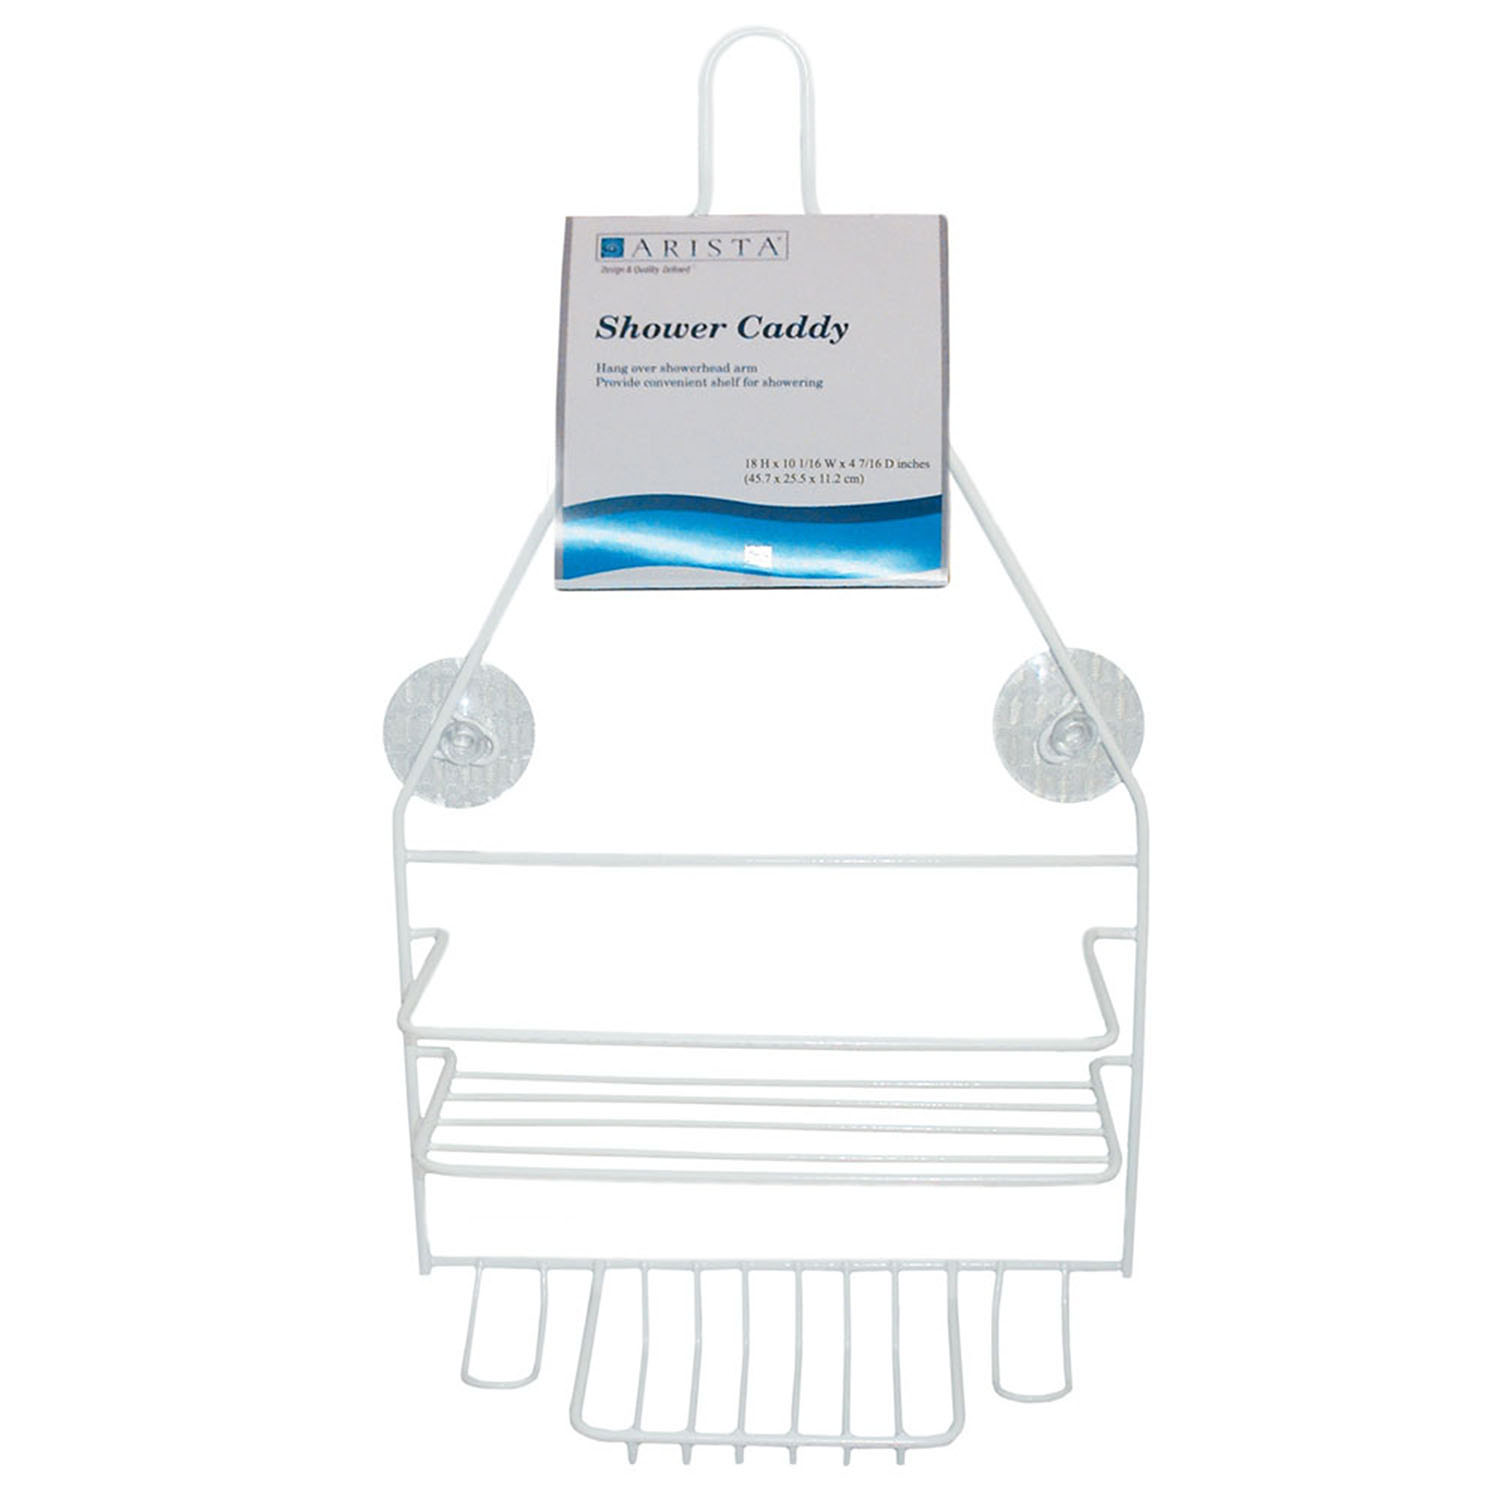 ARISTA® Shower Caddy - White or Chrome | ARISTA® Bath Distribution